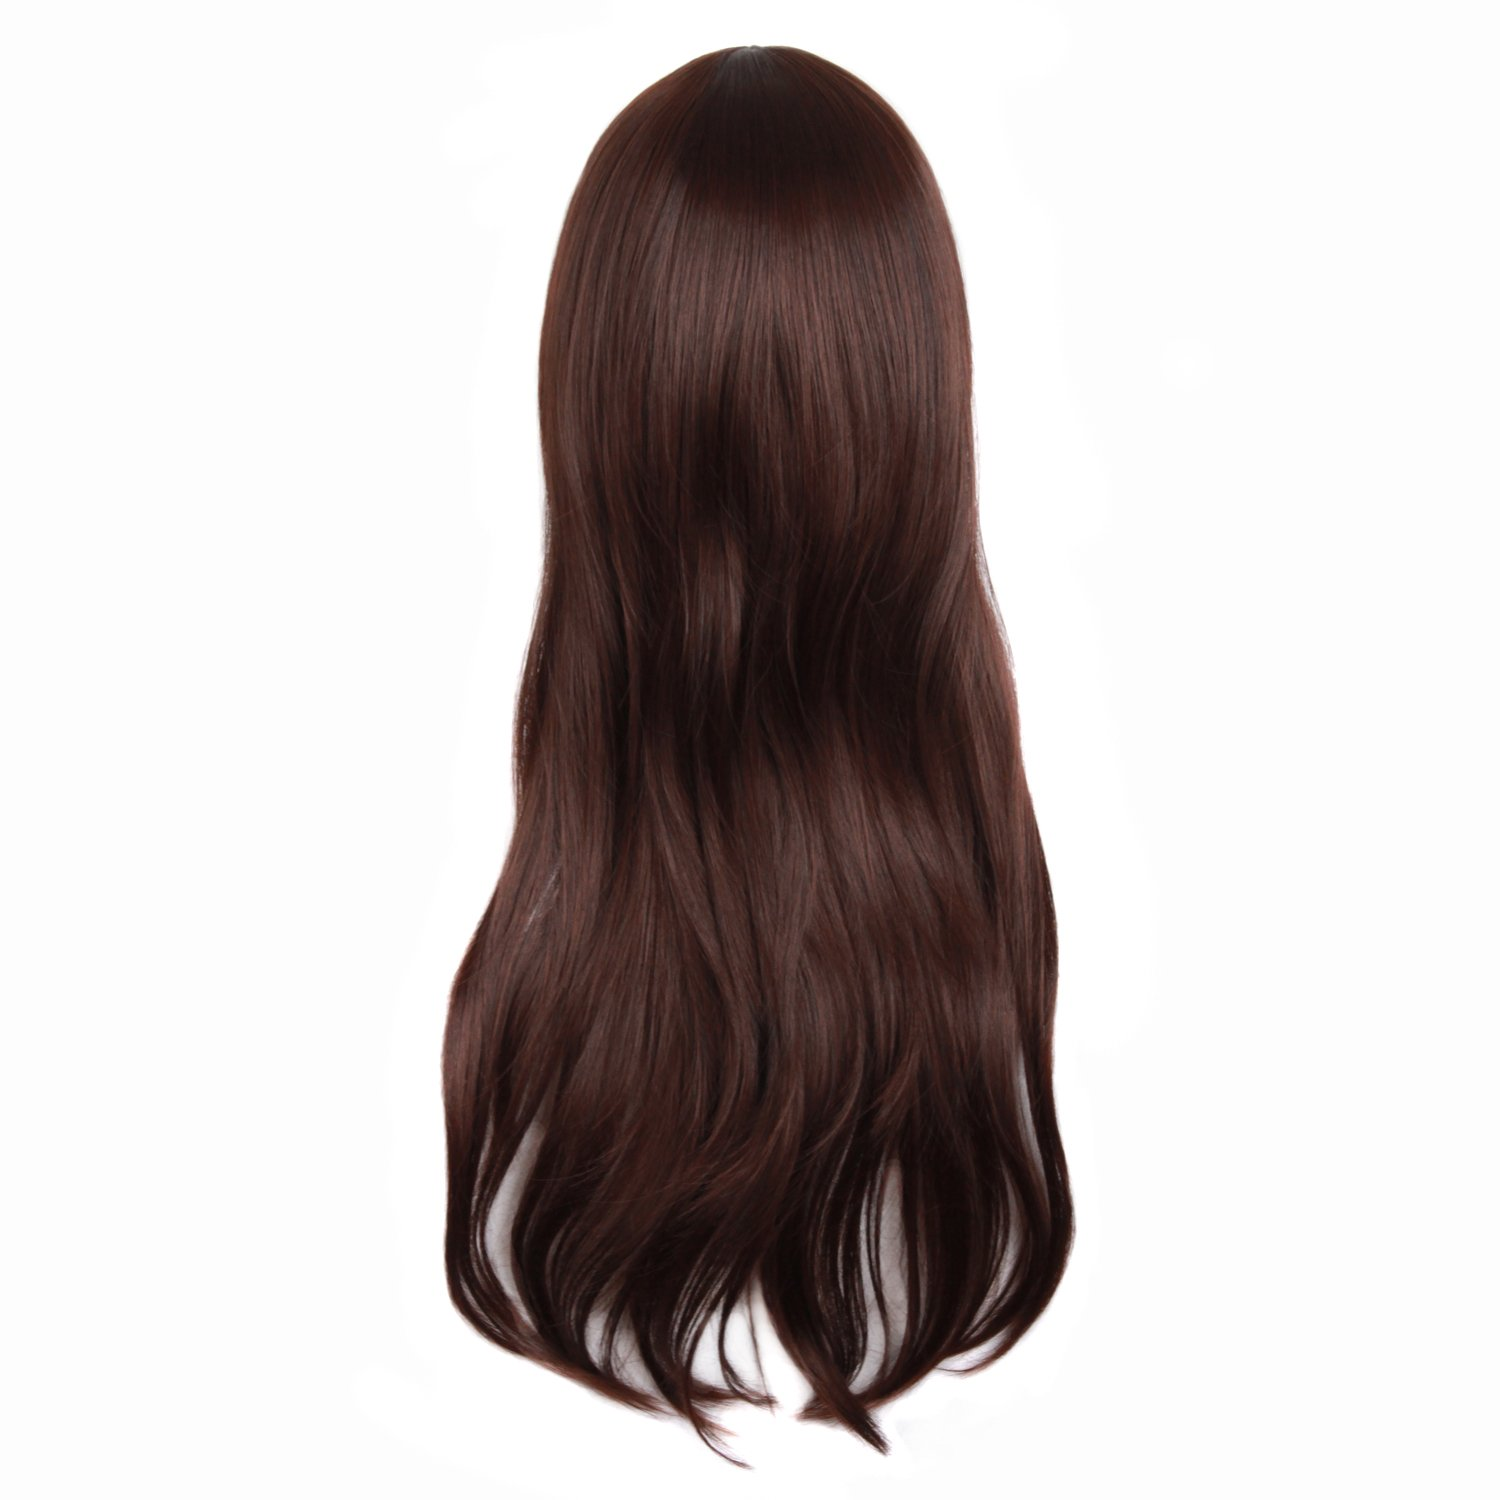 MapofBeauty 28 70cm Long Curly Hair Ends Costume Cosplay Wig Azure